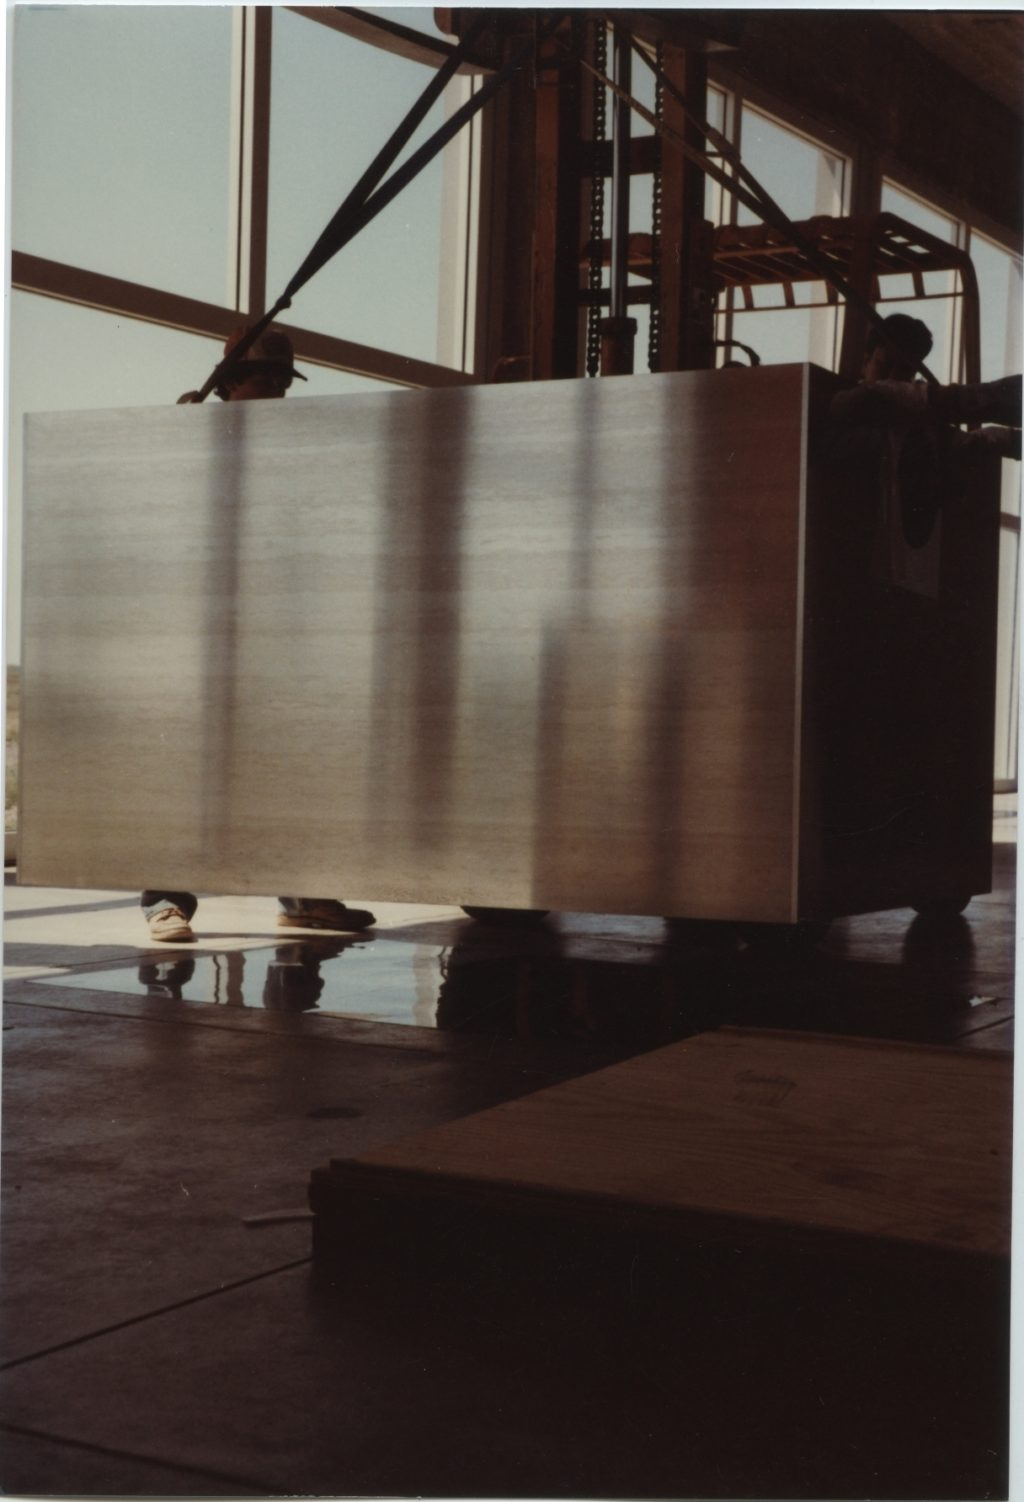 Donald Judd's mill aluminum pieces, arrival and installation